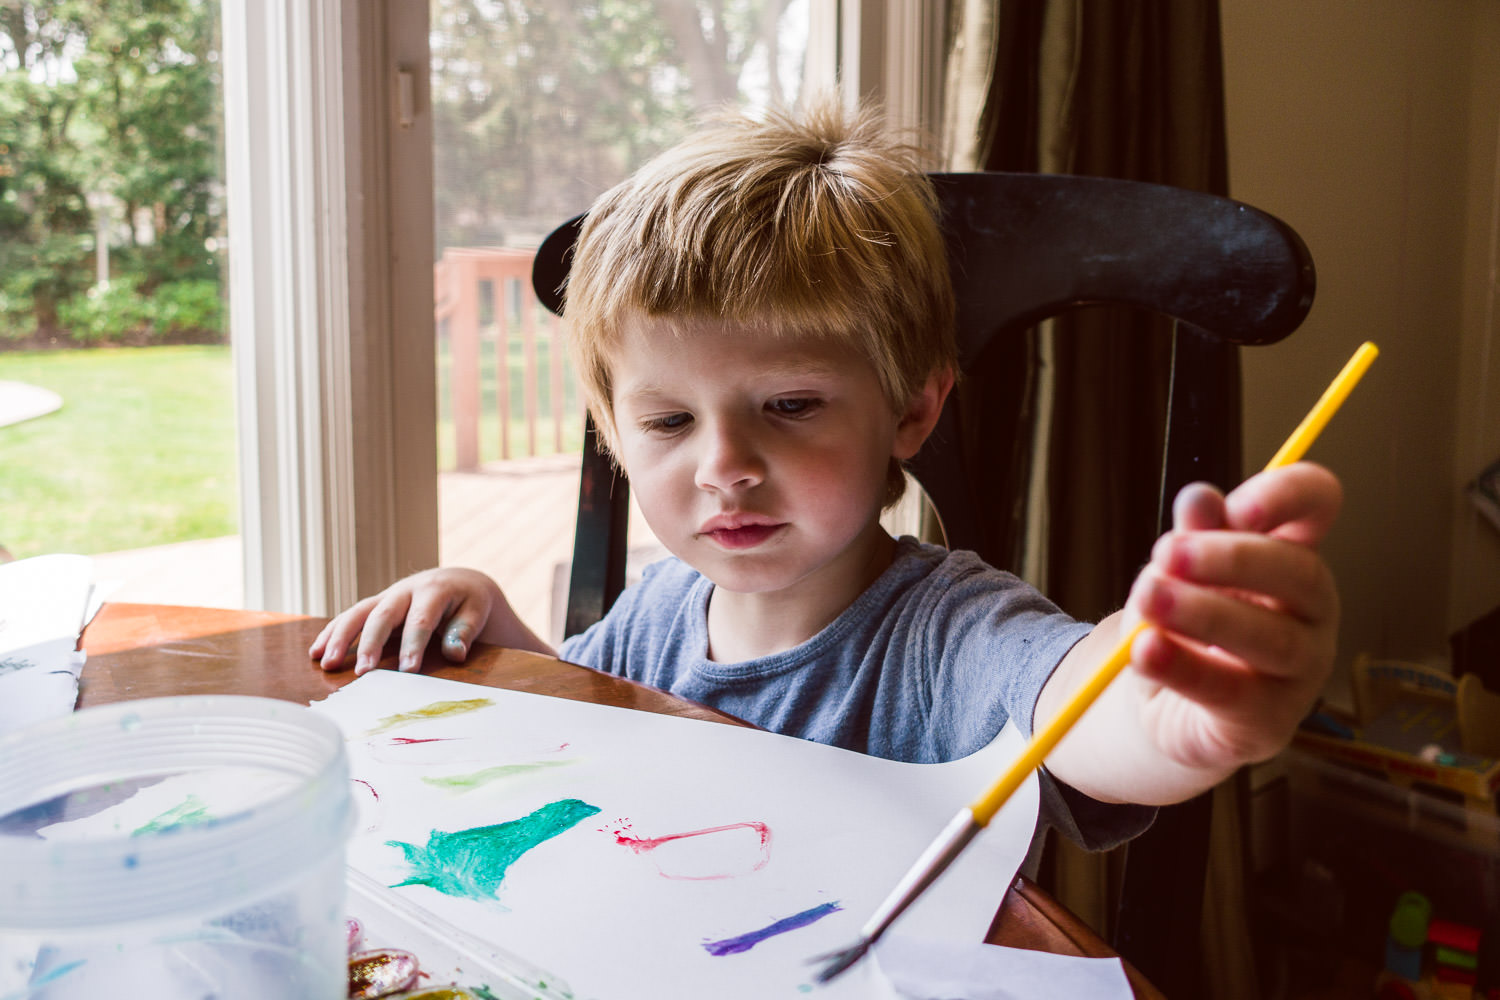 A little boy sits at a table and paints with watercolors.